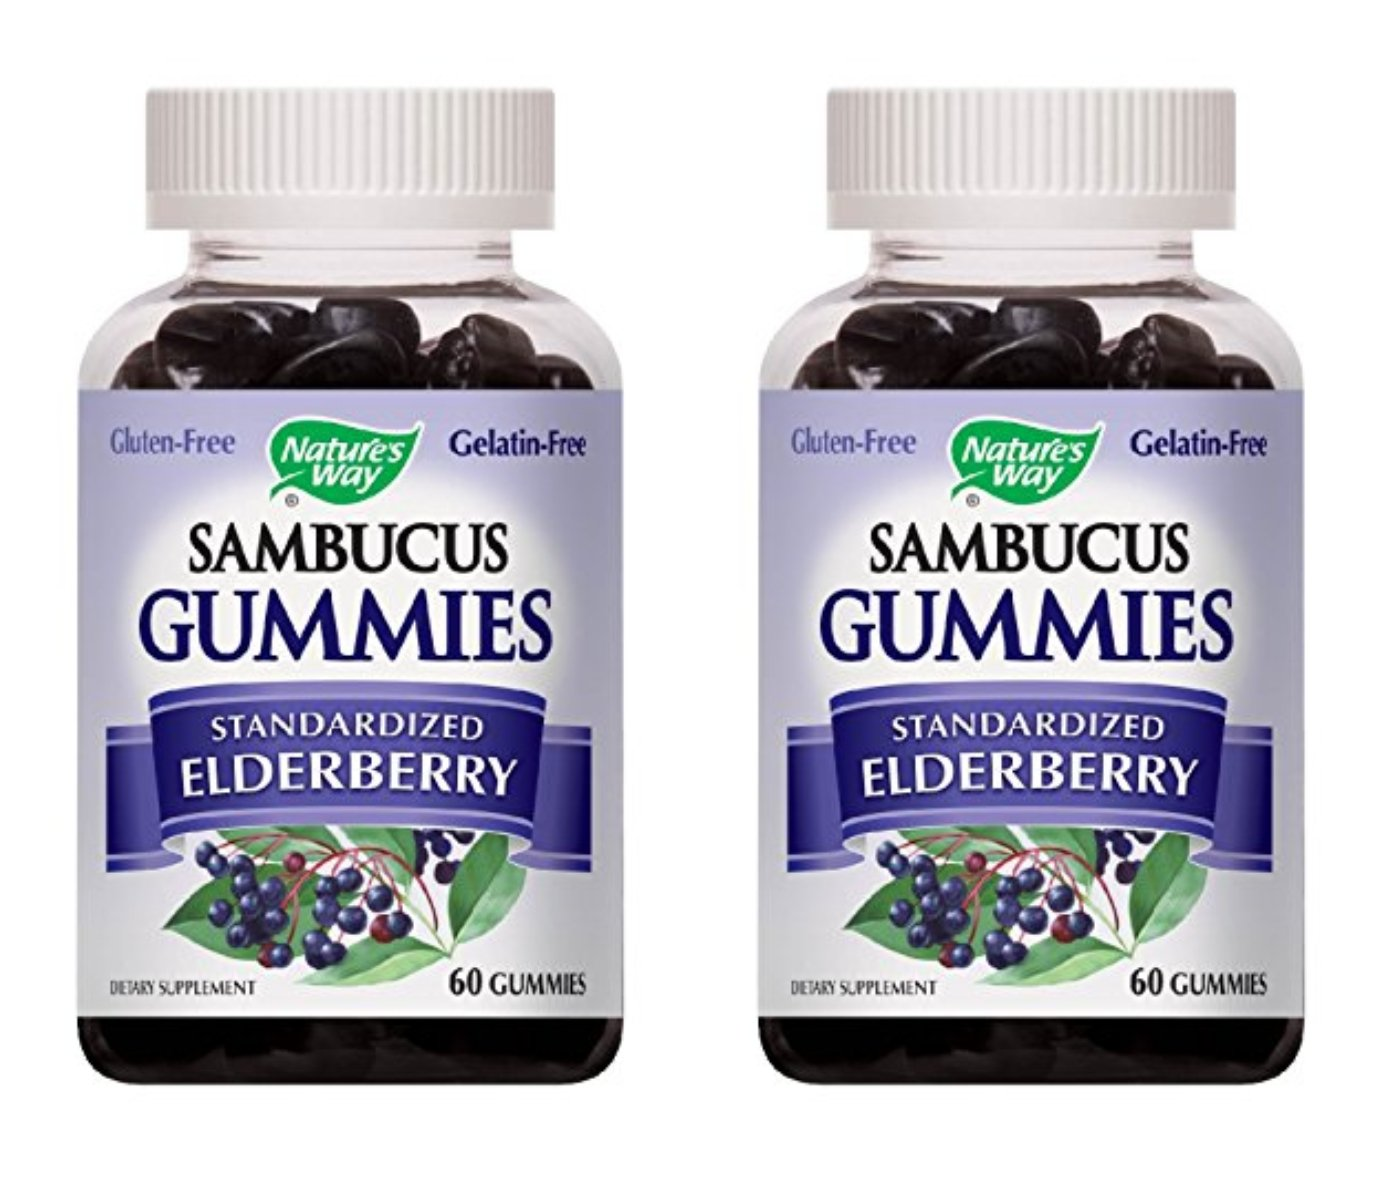 Nature s Way Sambucus Elderberry Gummies, Herbal Supplements with Vitamin C and Zinc, Gluten Free, Vegetarian, 60 Gummies Packaging May Vary , Pack of 6